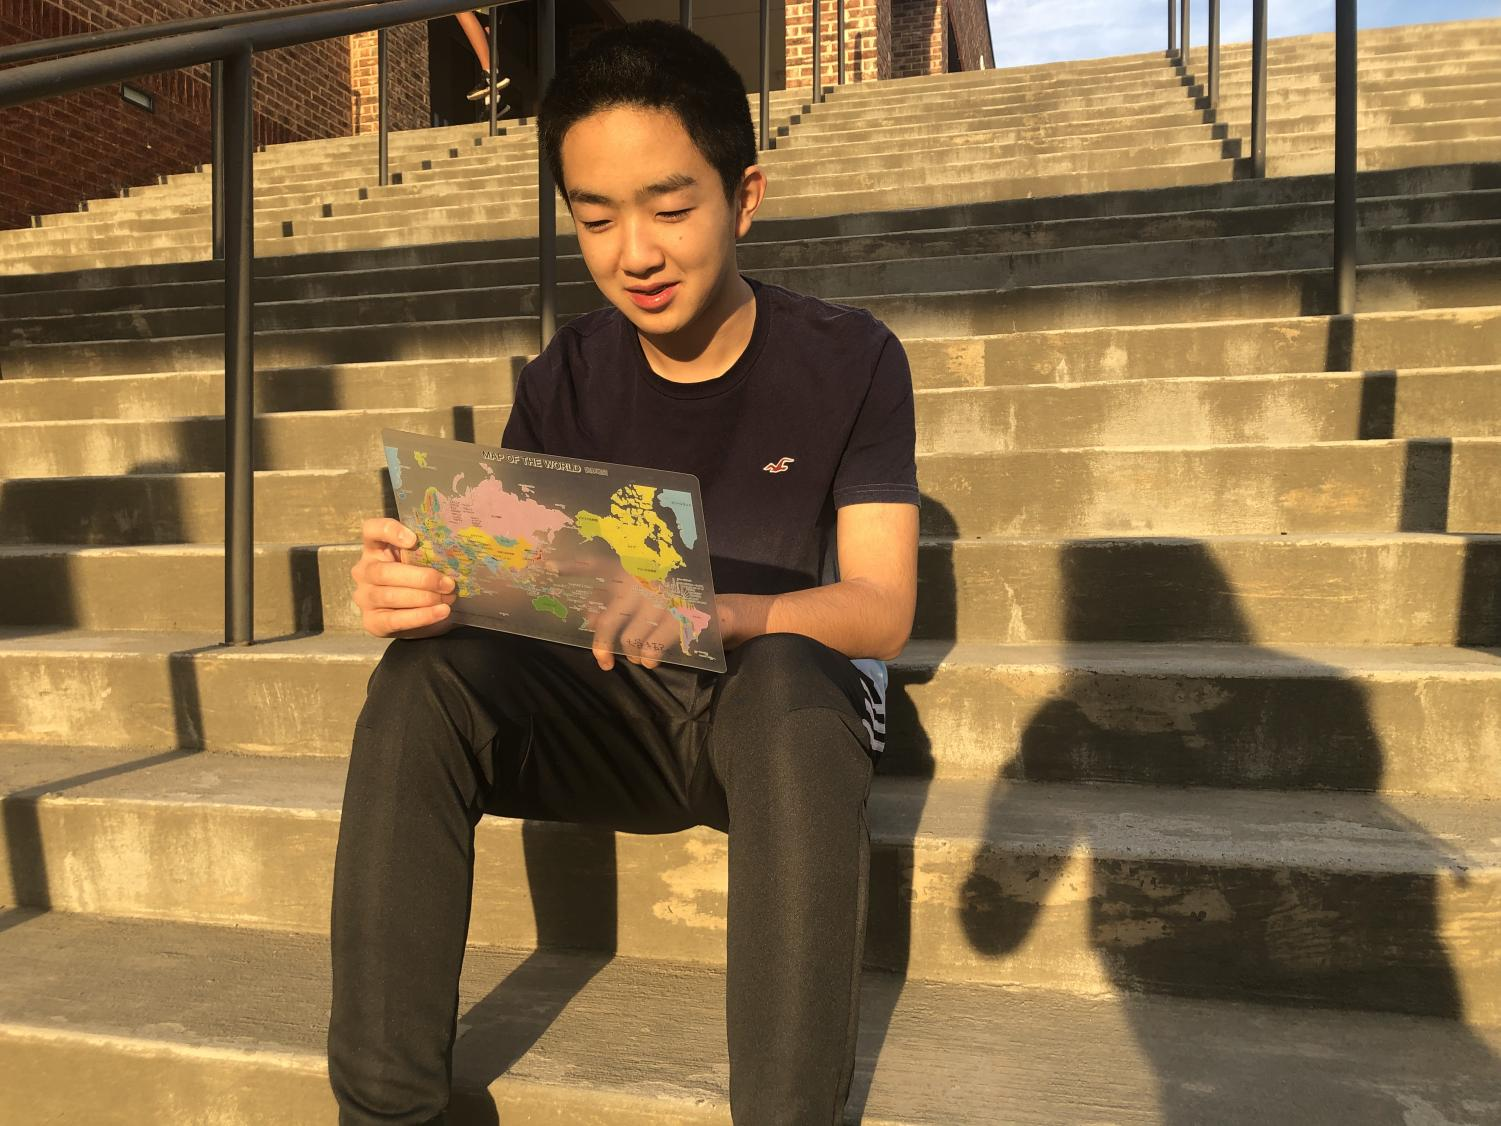 Traveling the globe.  Freshman Takumi Otani looks at a map in wonder of where he'll end up next. Considering all the places he has traveled already, his life is full of new adventures and discoveries.